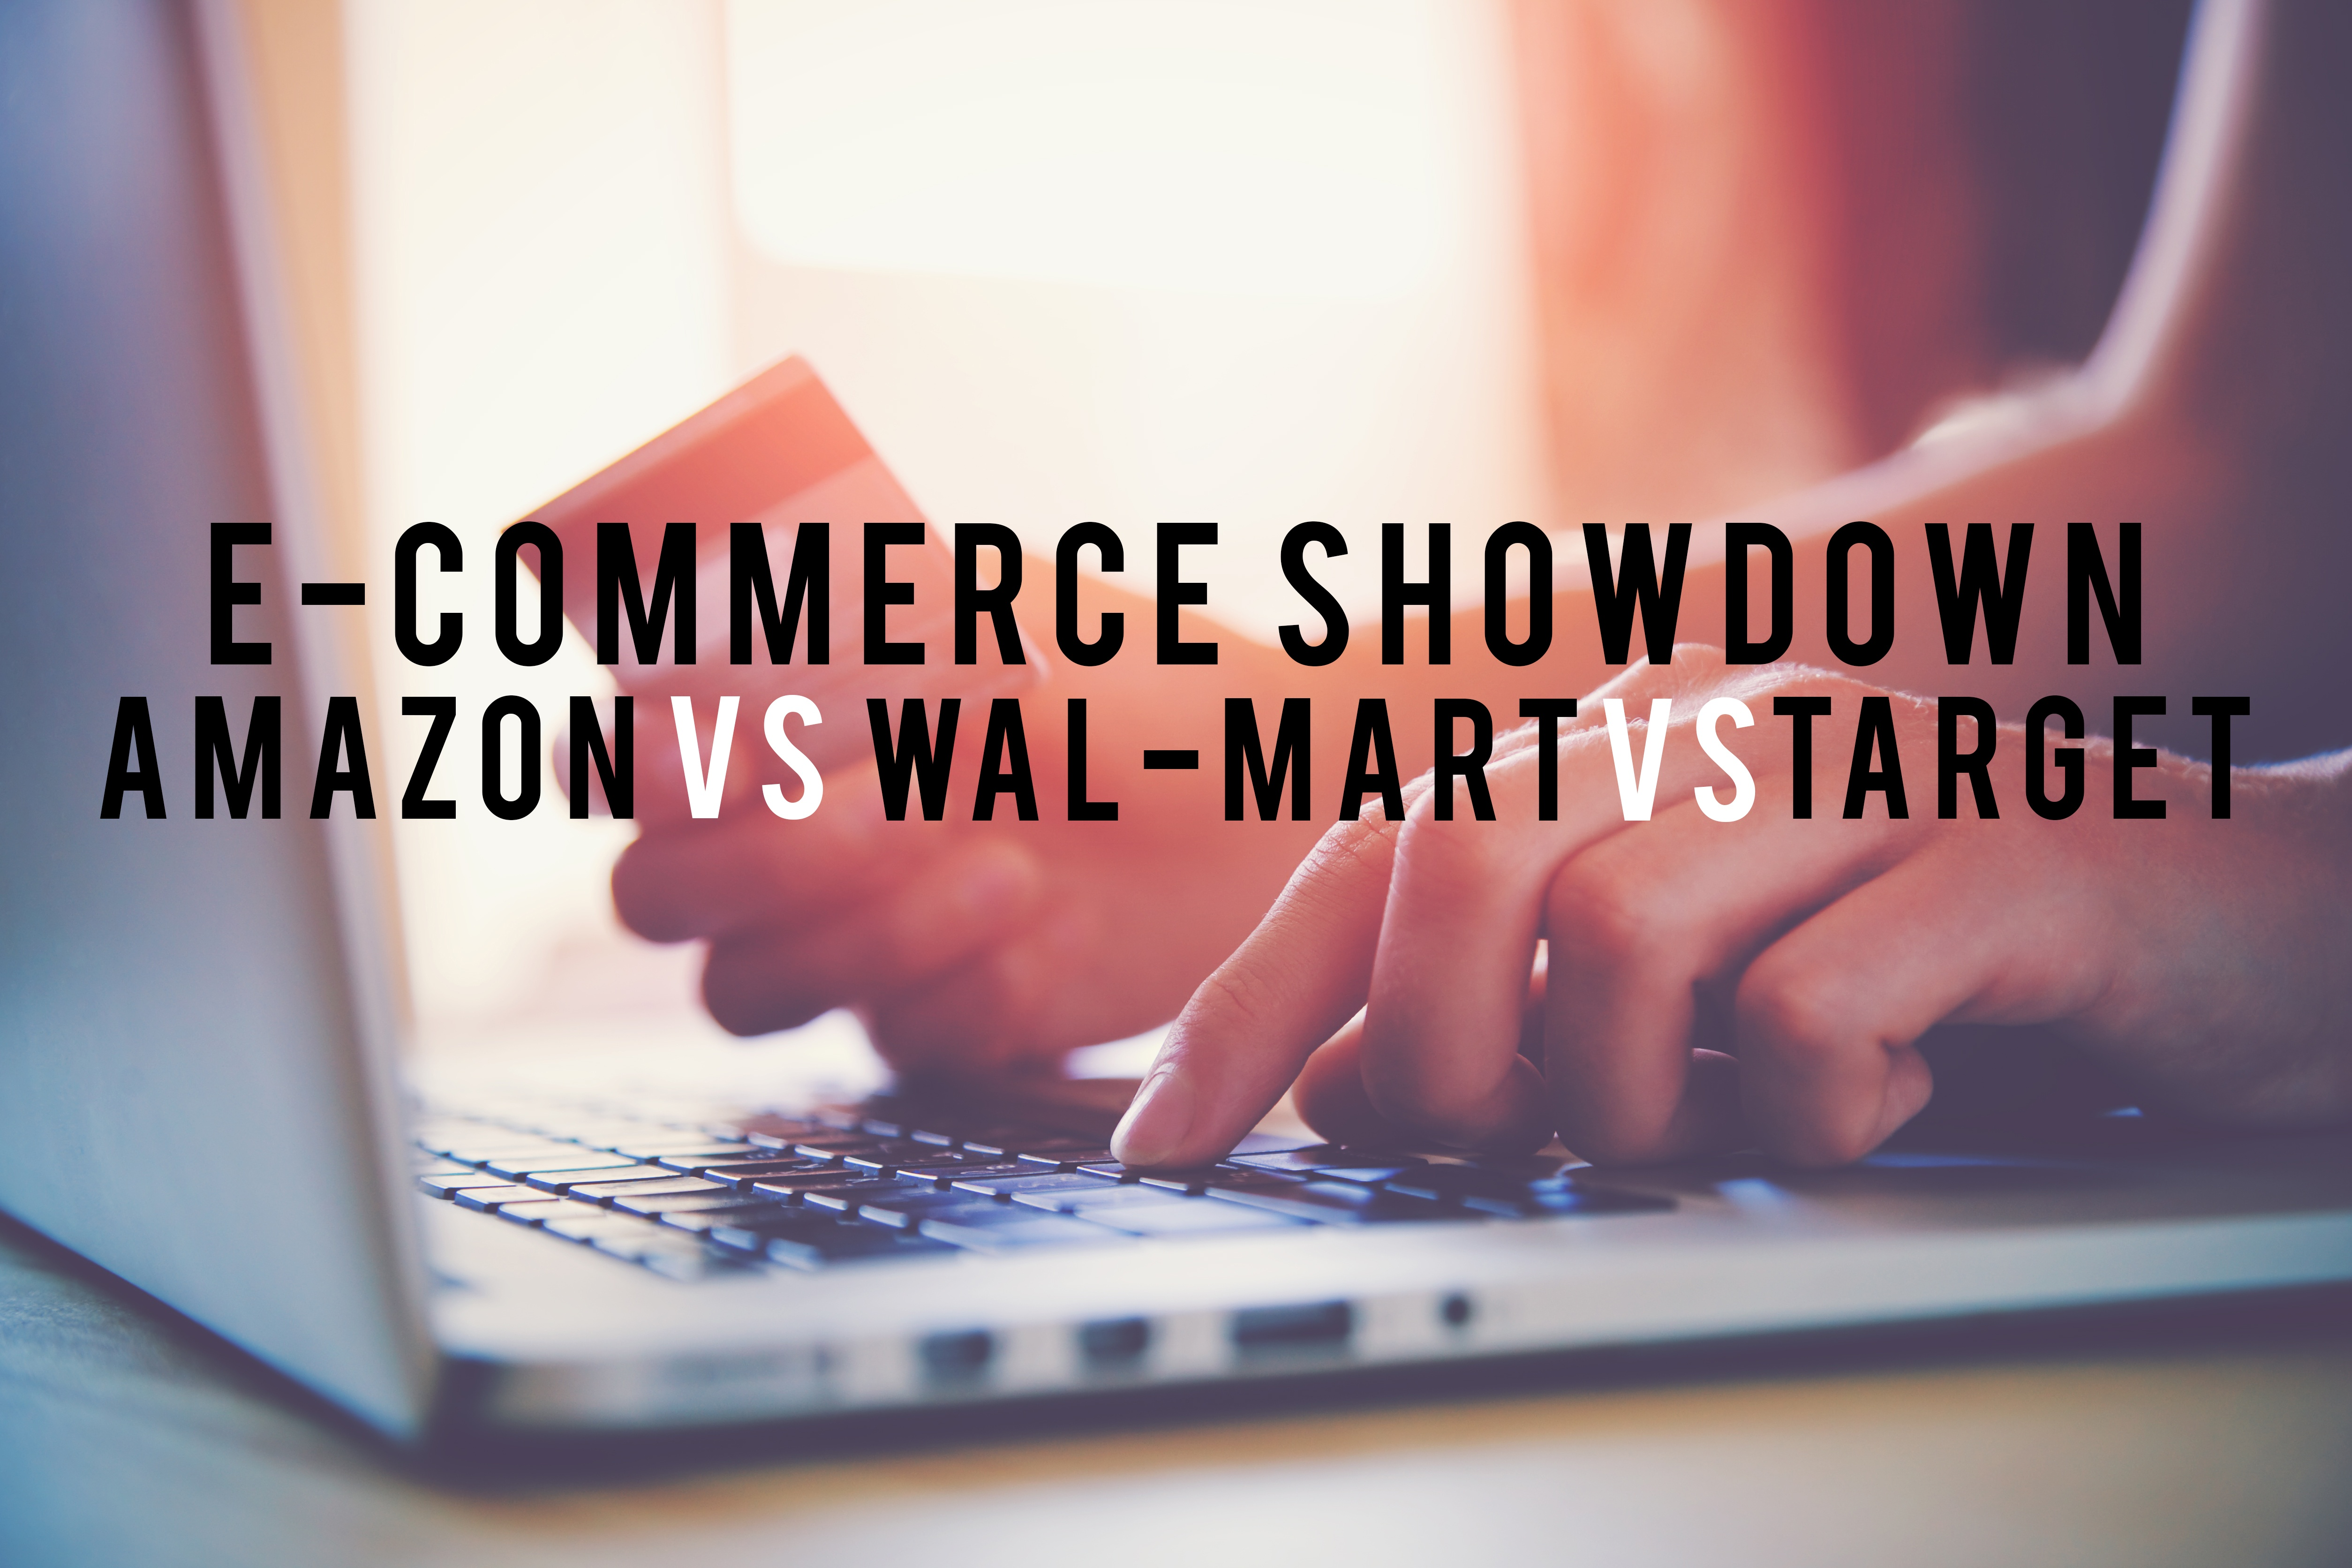 case study walmart vs amazon Answer to analyze the case study comparing walmart and amazon's business models and business strategies from text book https:/.